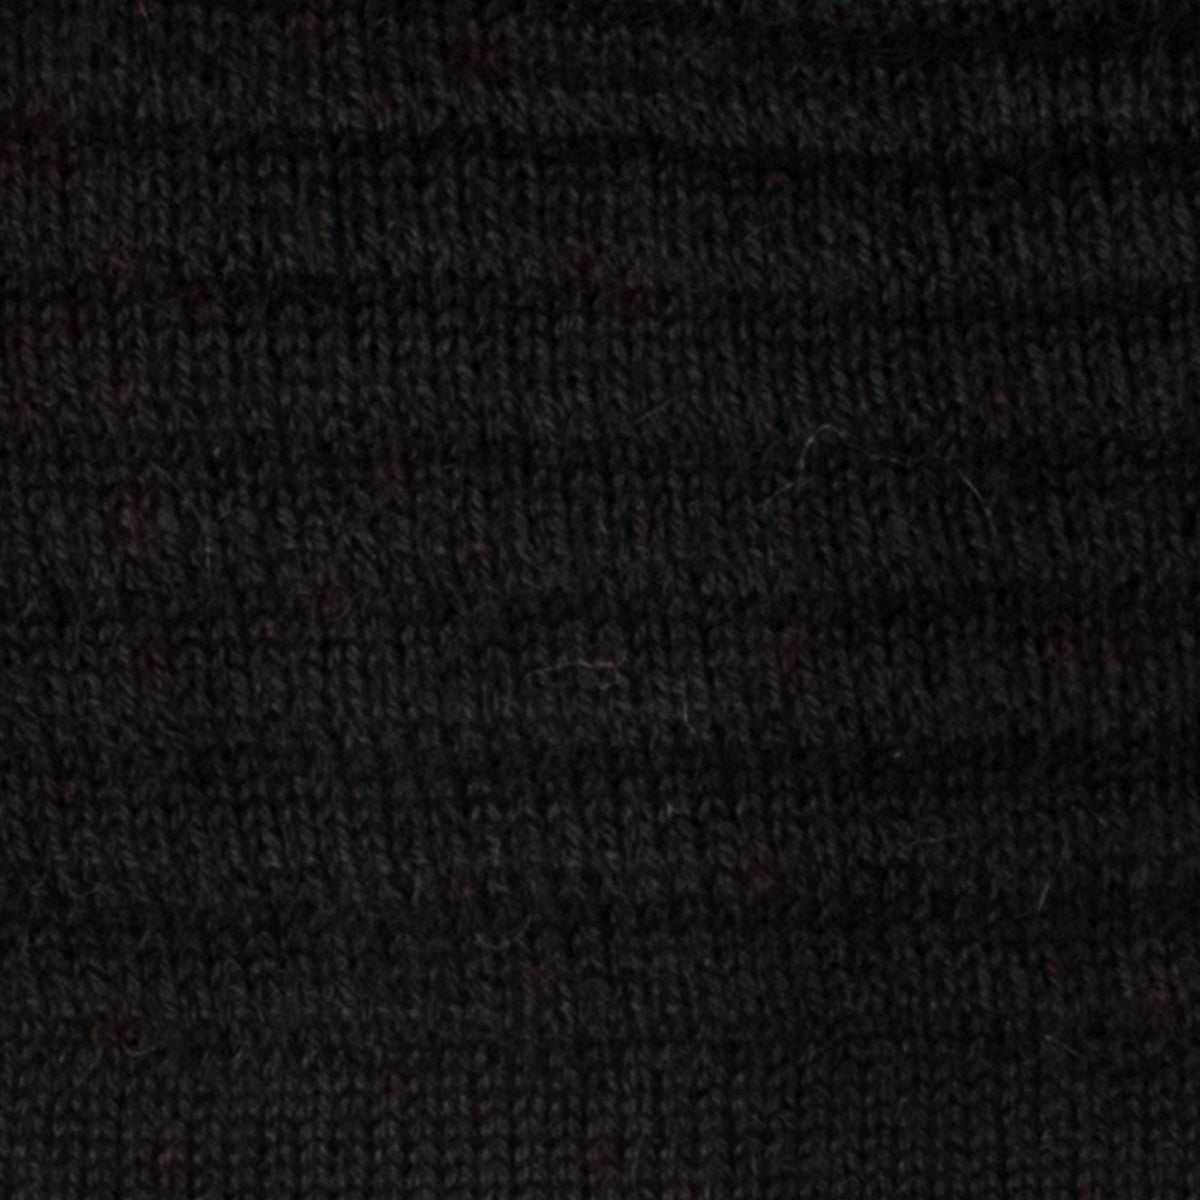 Texture Detail of Black Slouchy Beanie in 100% Baby Alpaca Fiber - Sold by Chic & Basta